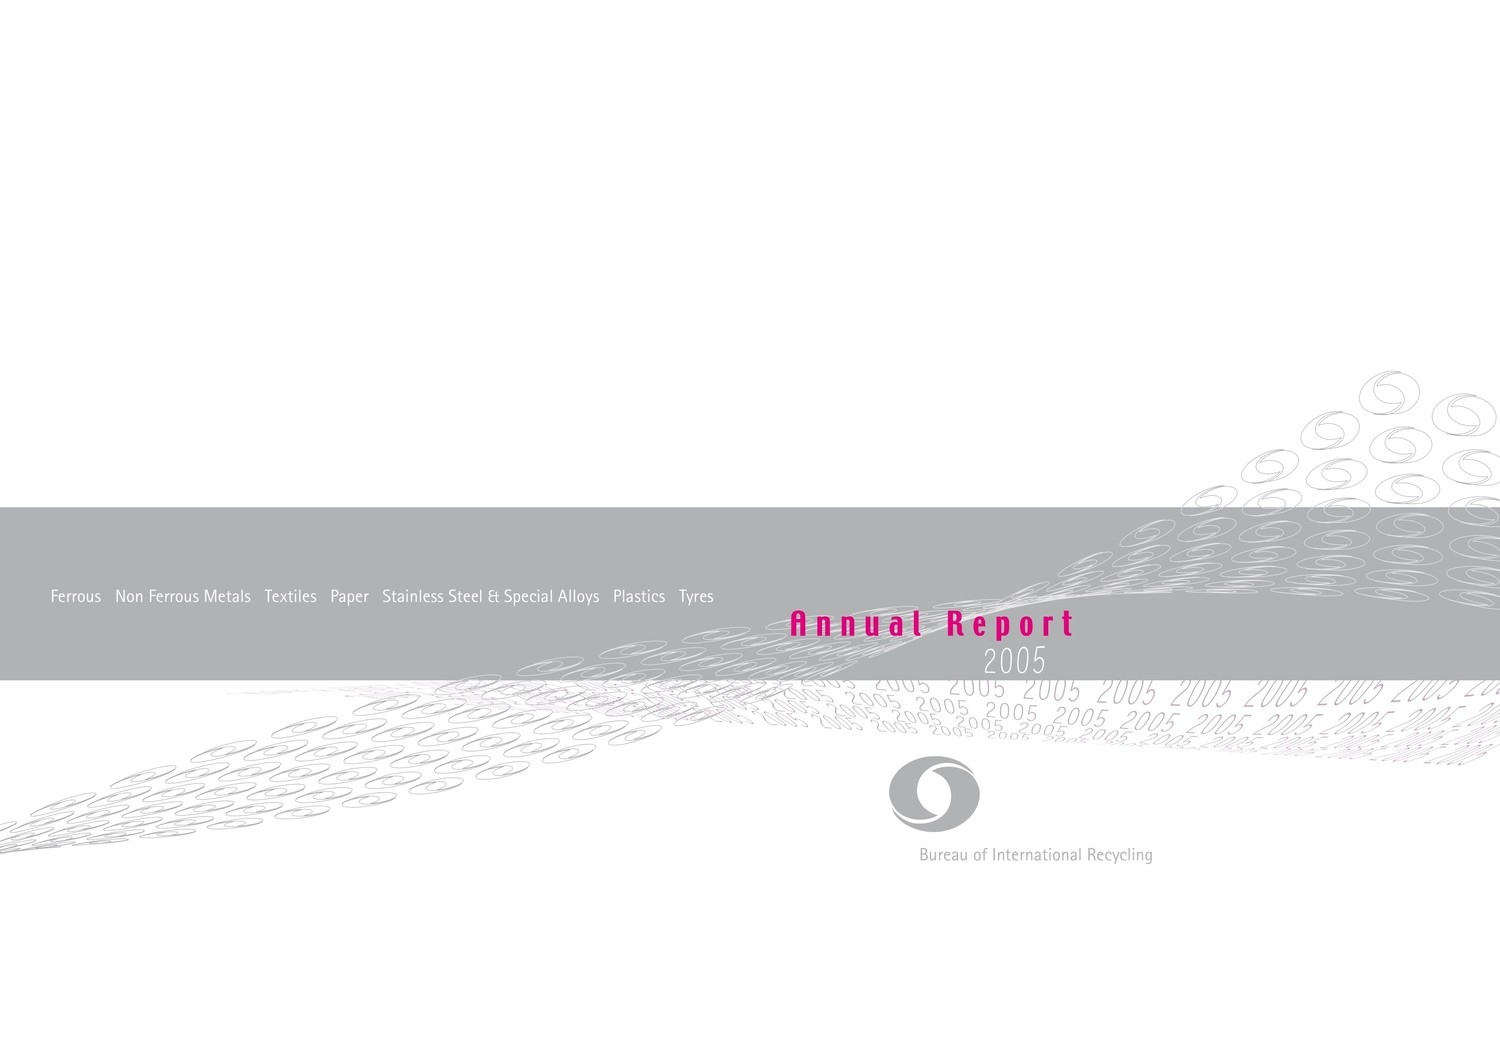 BIR Annual Report 2005